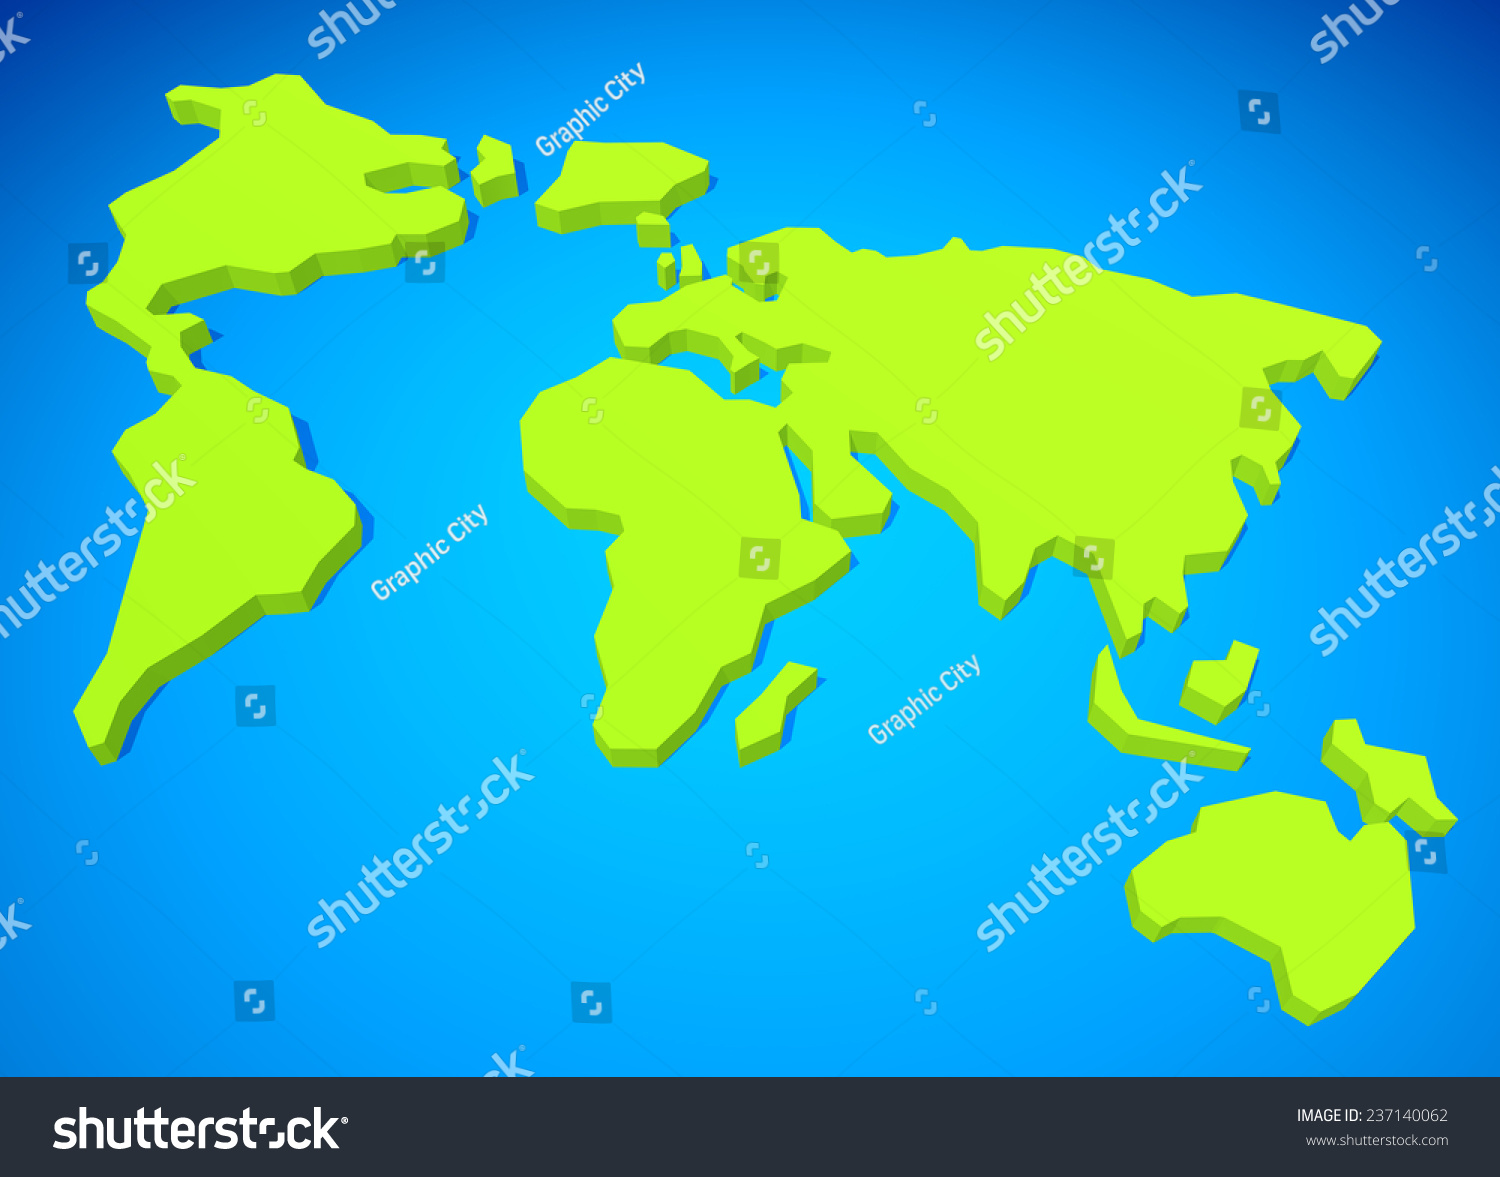 3D Simple World Map